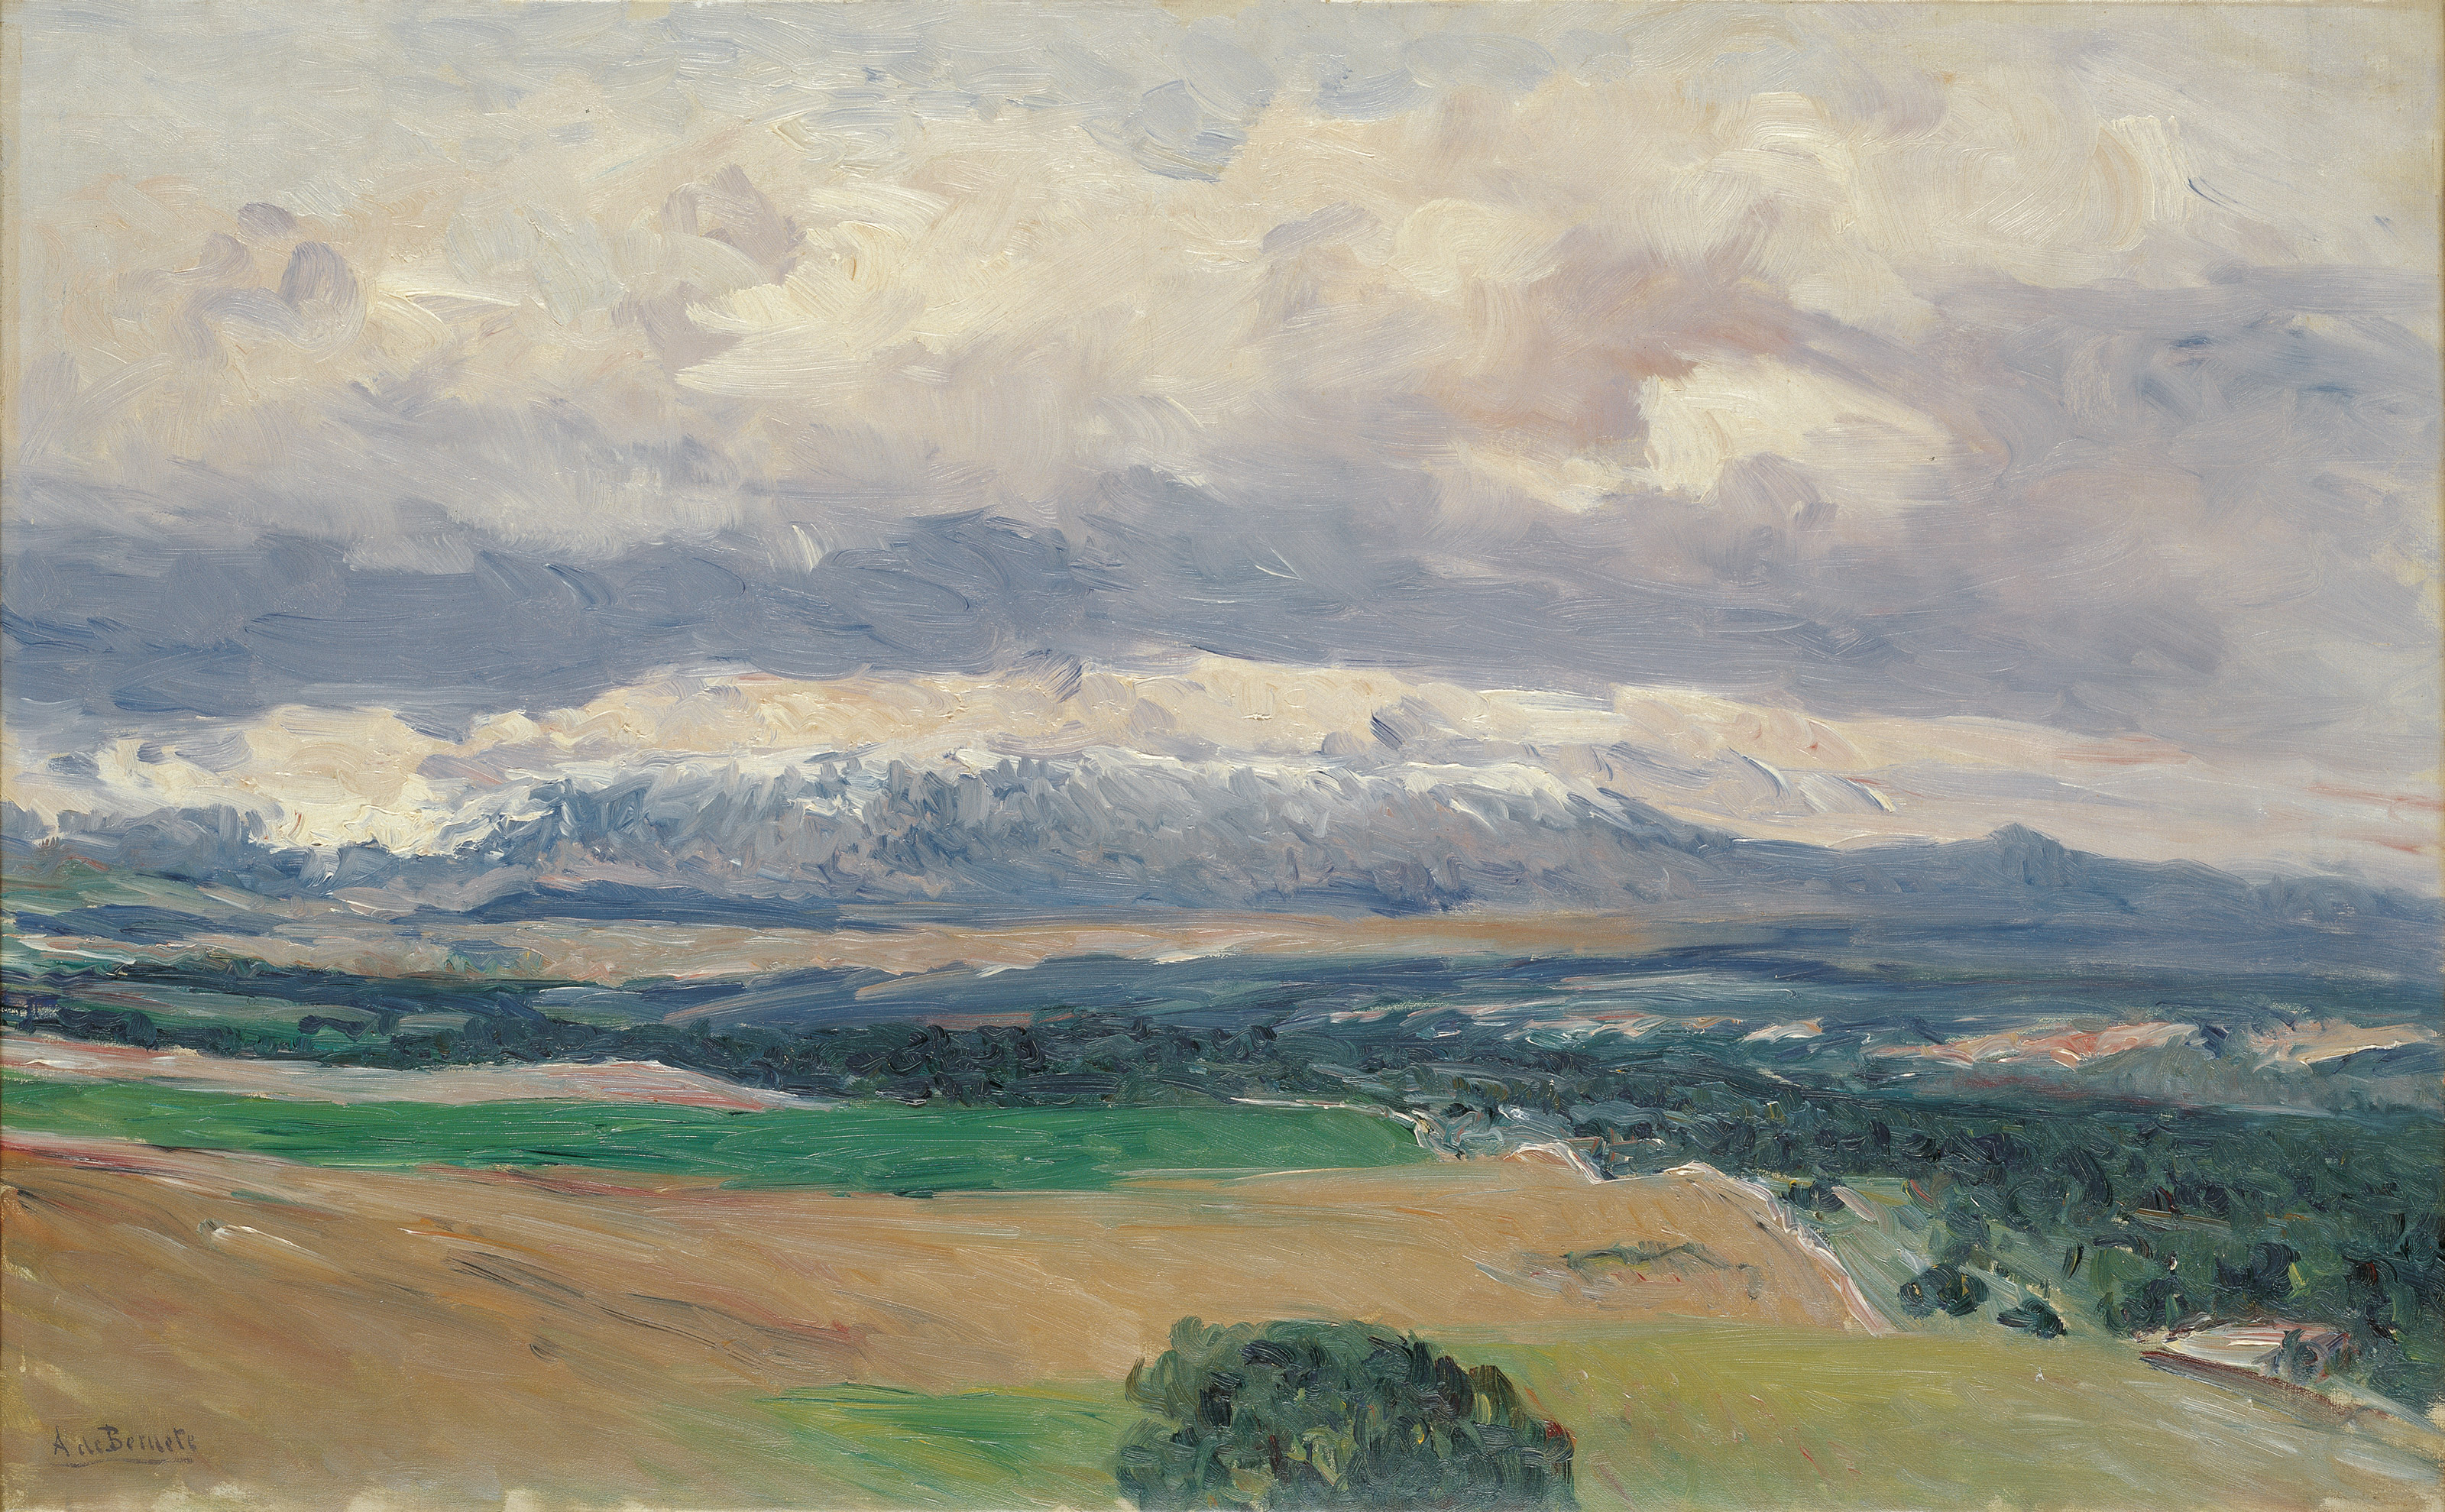 View of the Sierra de Guadarrama from El Plantío